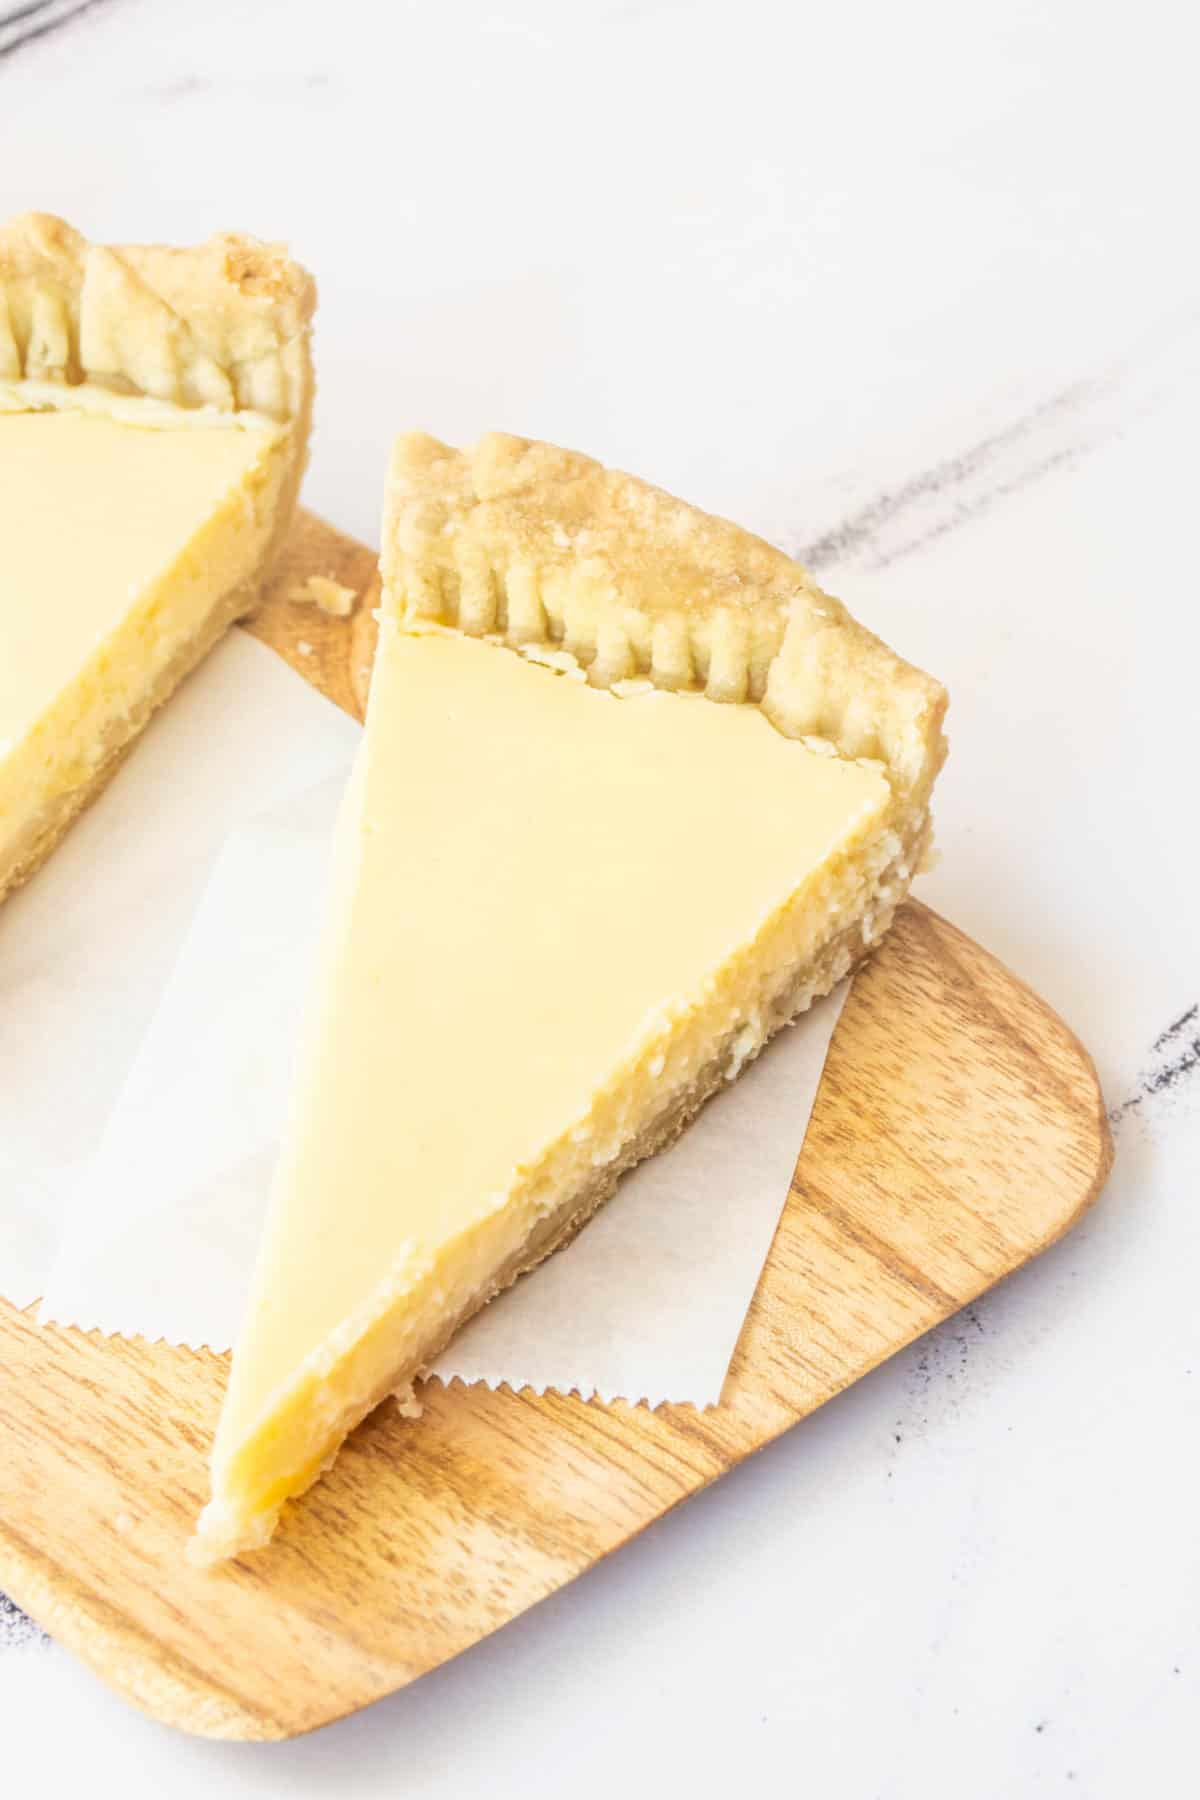 Two slices of Meyer lemon pie on a table.